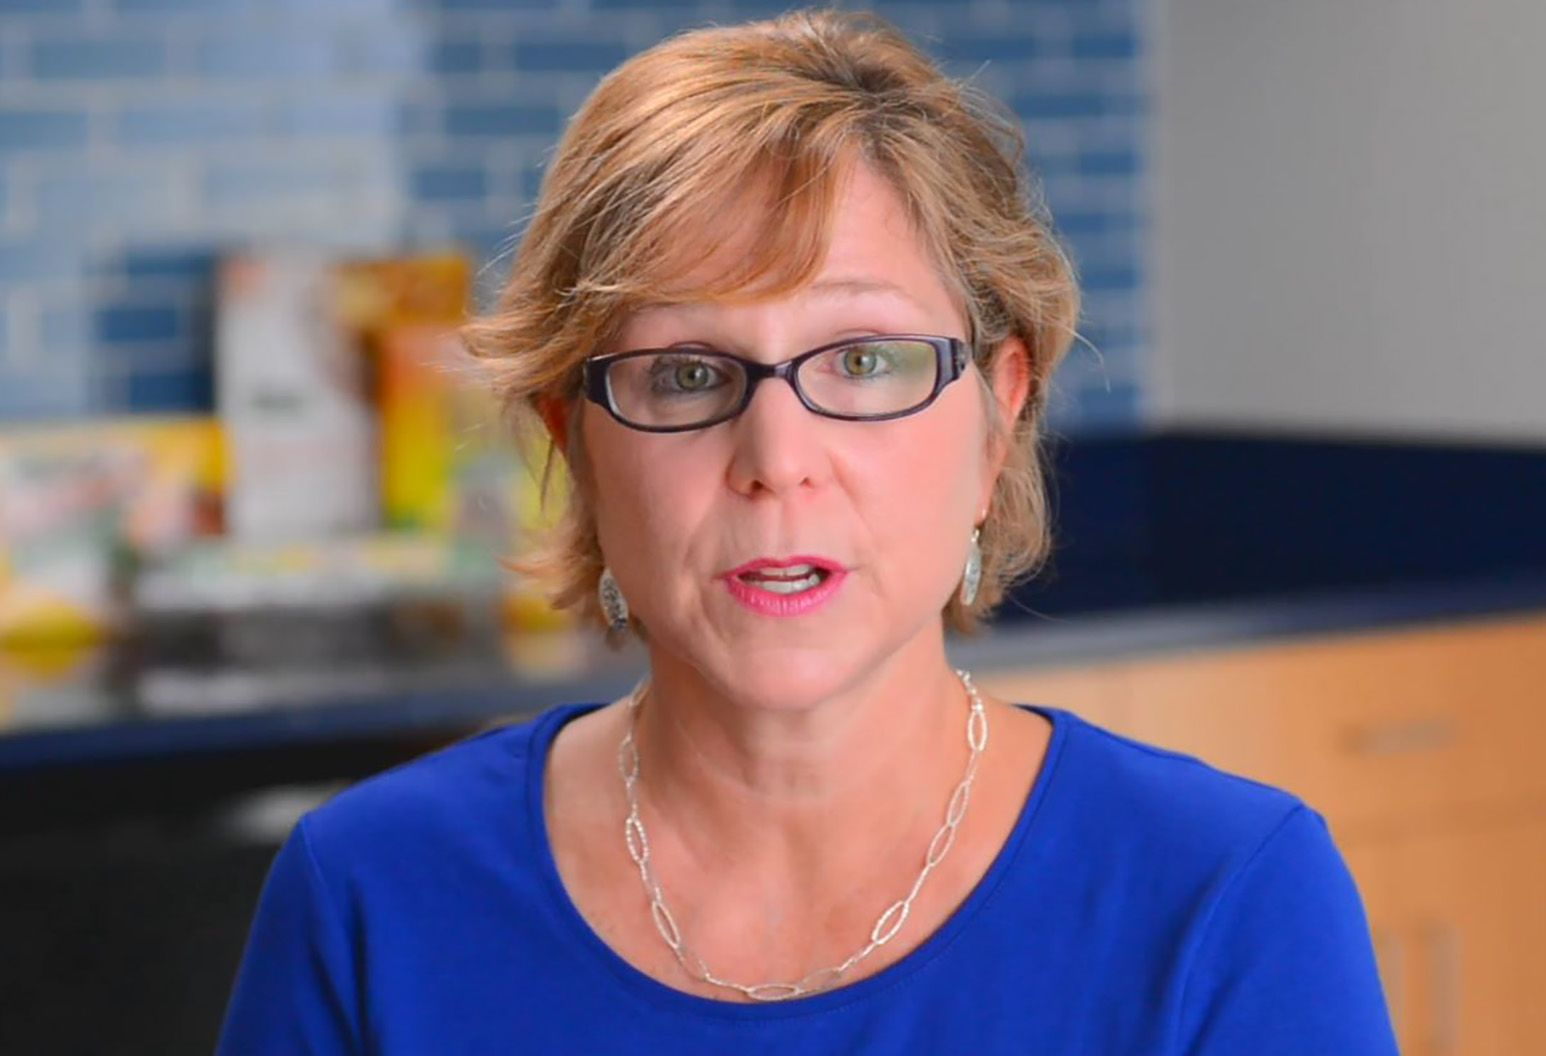 A middle-aged woman with short blonde hair is speaking. She's wearing a blue shirt and glasses.